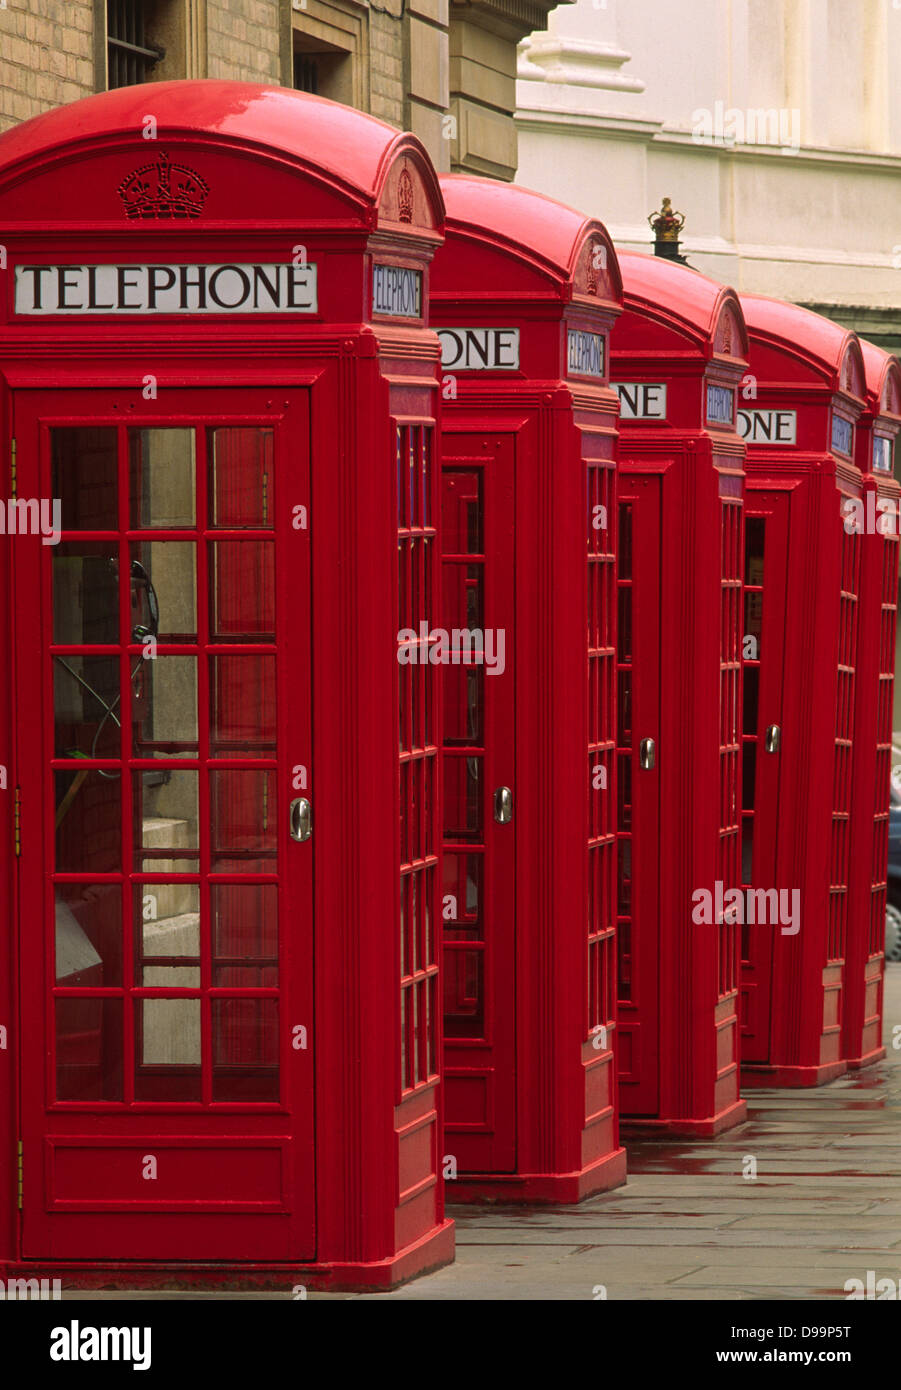 Group of traditional K2 telephone boxes designed by Sir Giles Gilbert Scott, on Broad Street, Covent Garden in London - Stock Image